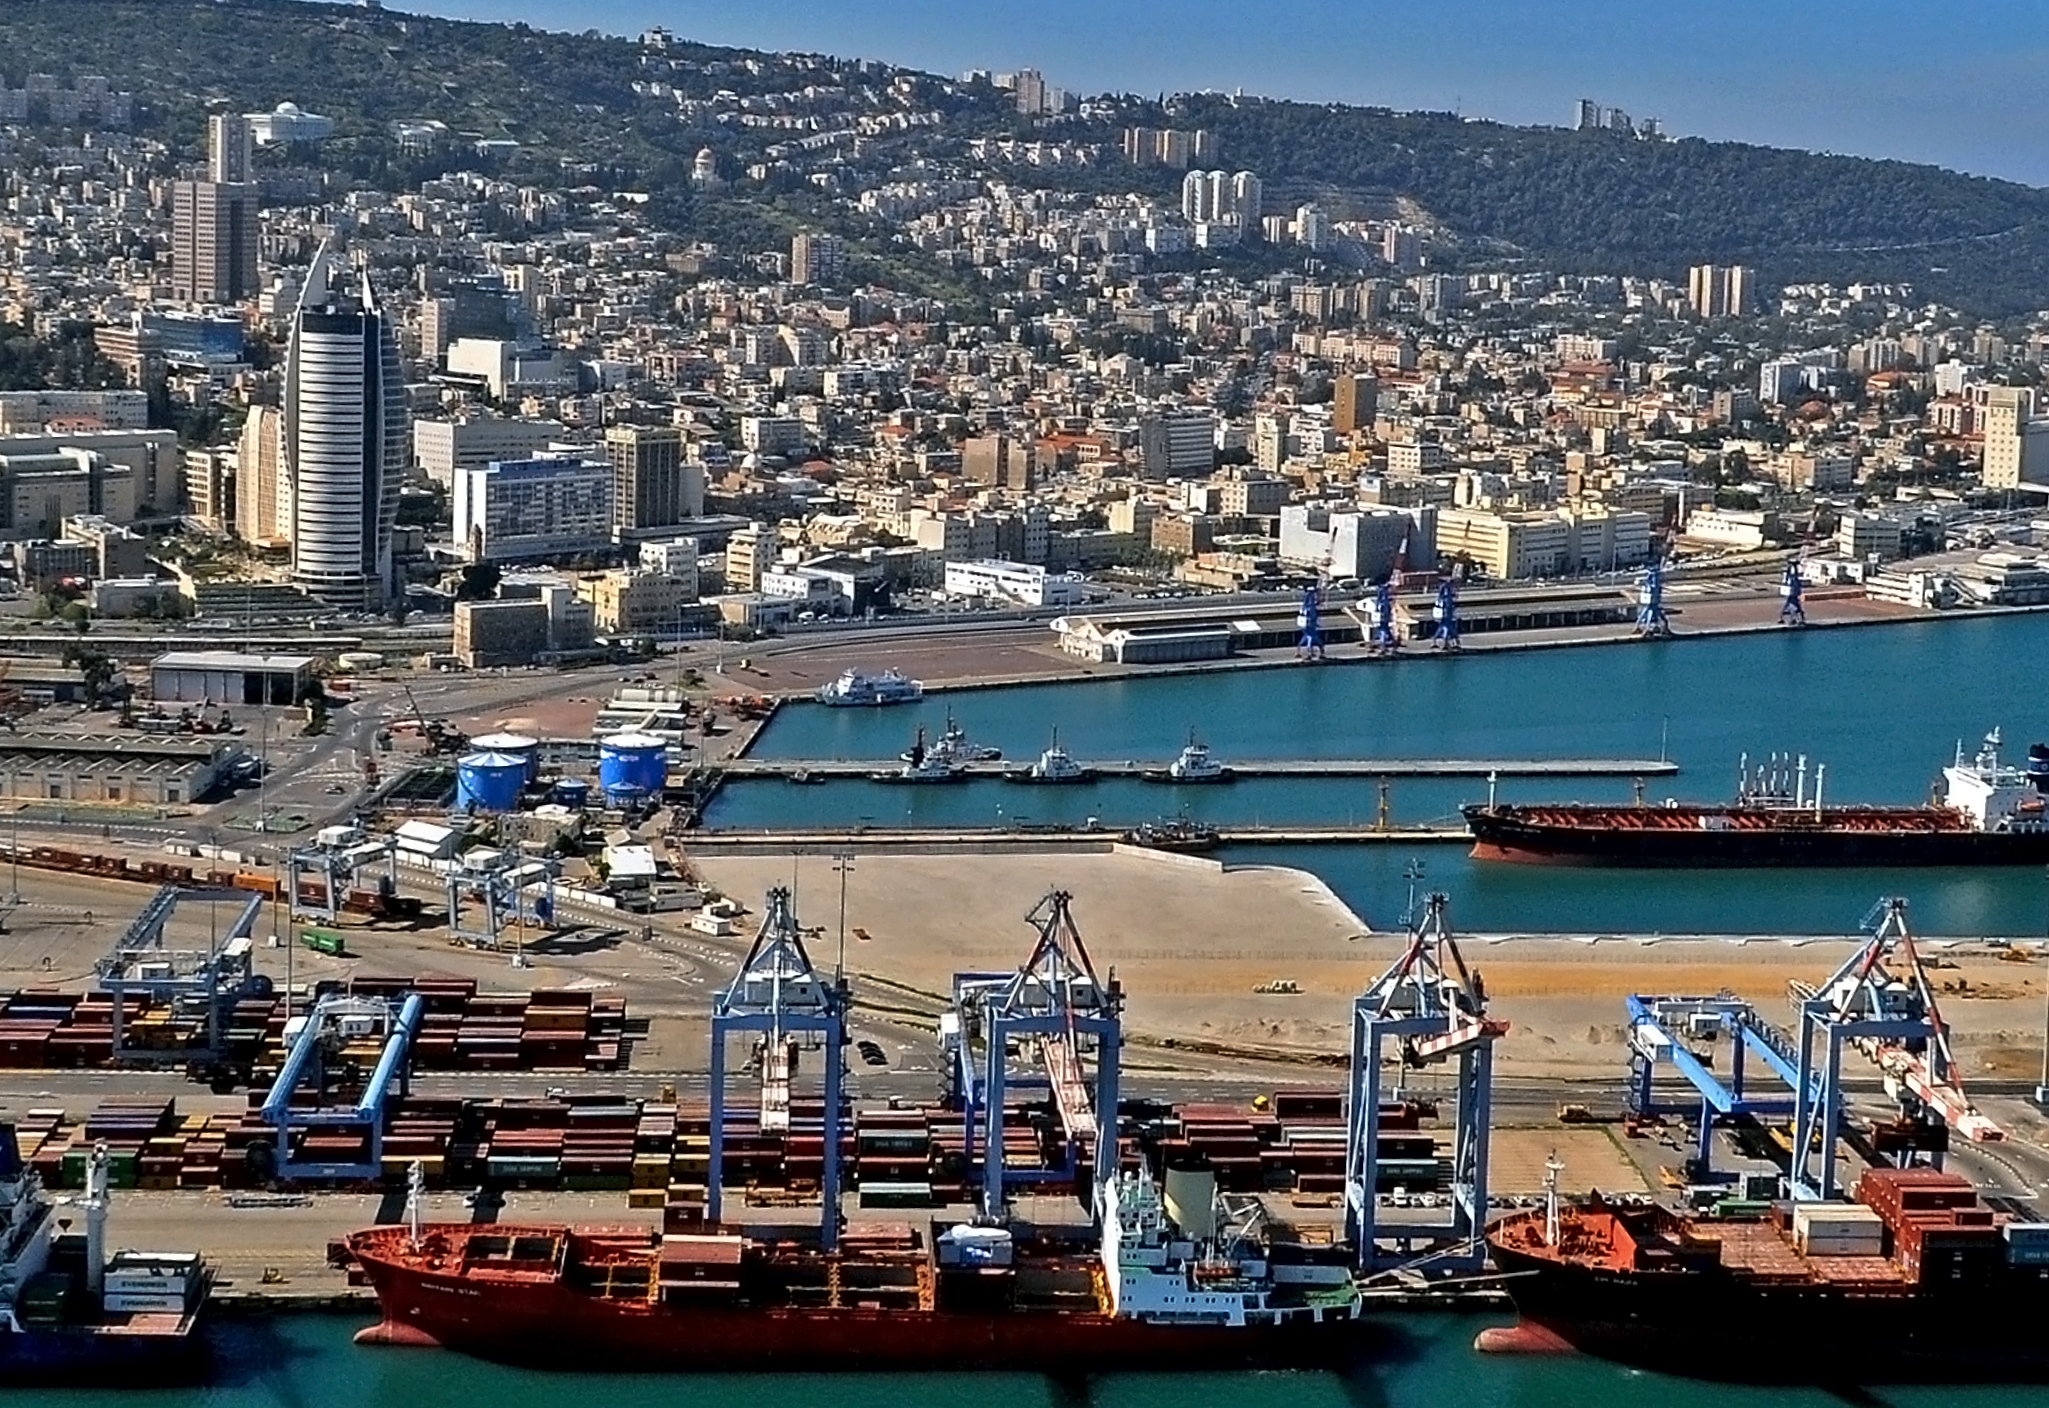 מסודר File:Port of Haifa 2752-1.jpg - Wikimedia Commons AA-88